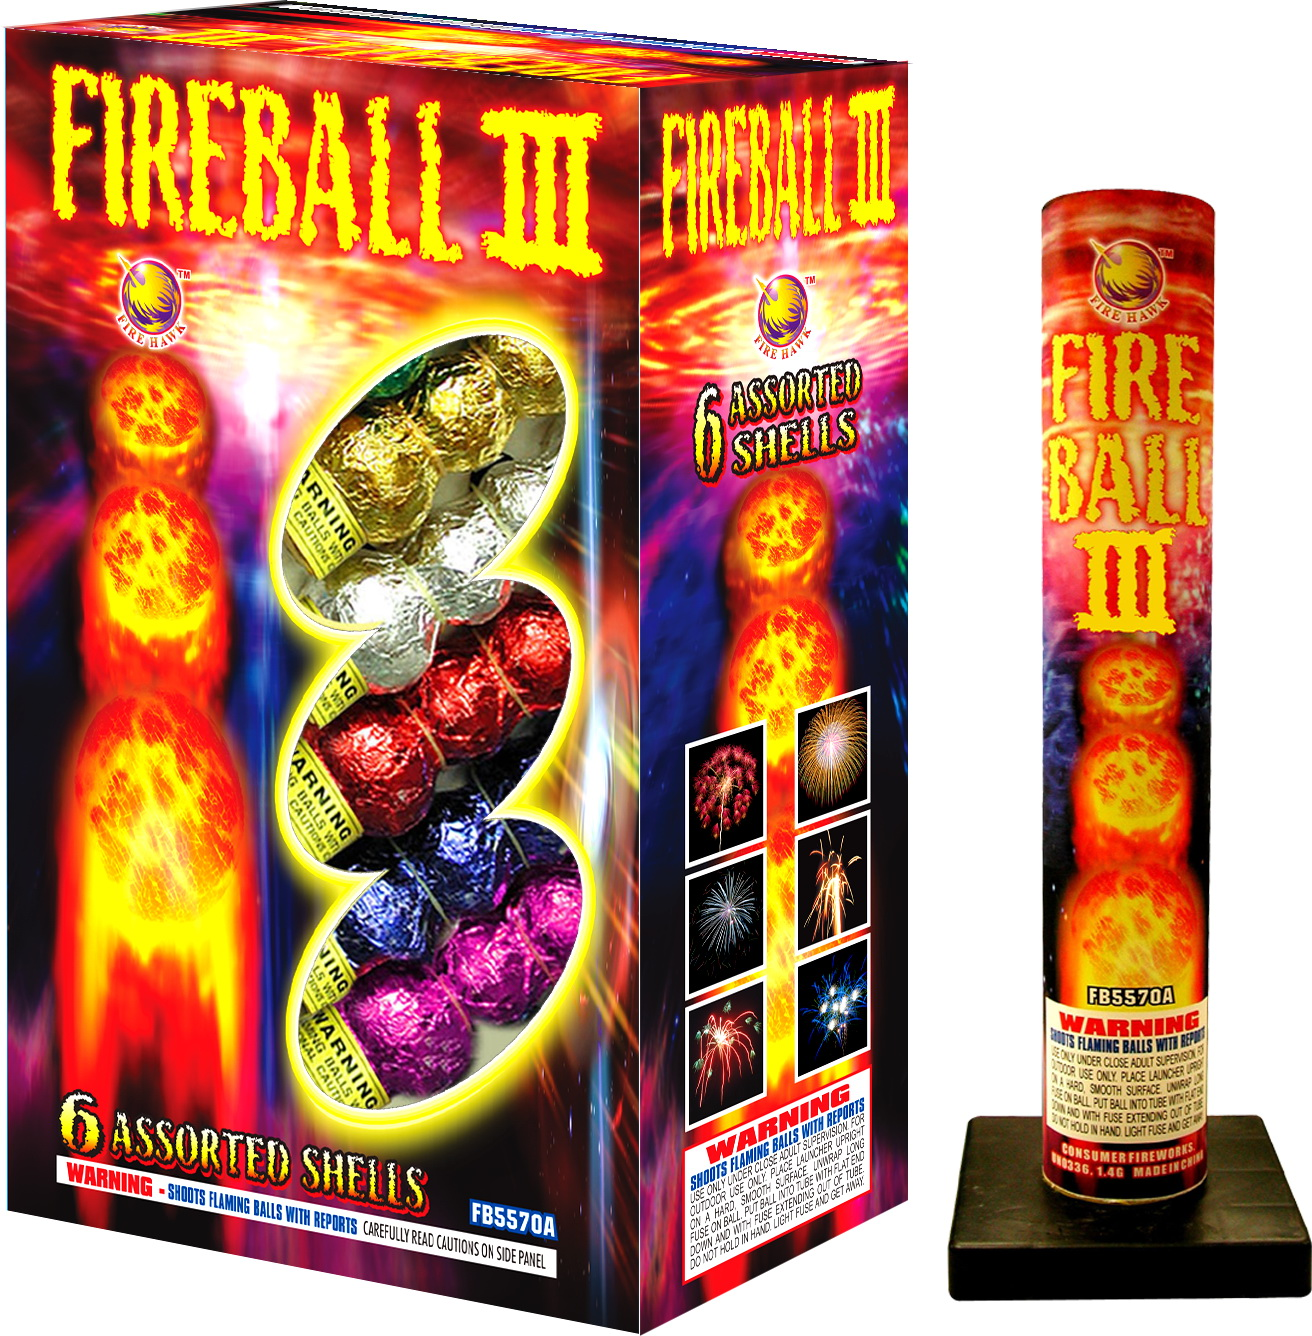 FB5570A Fireball III